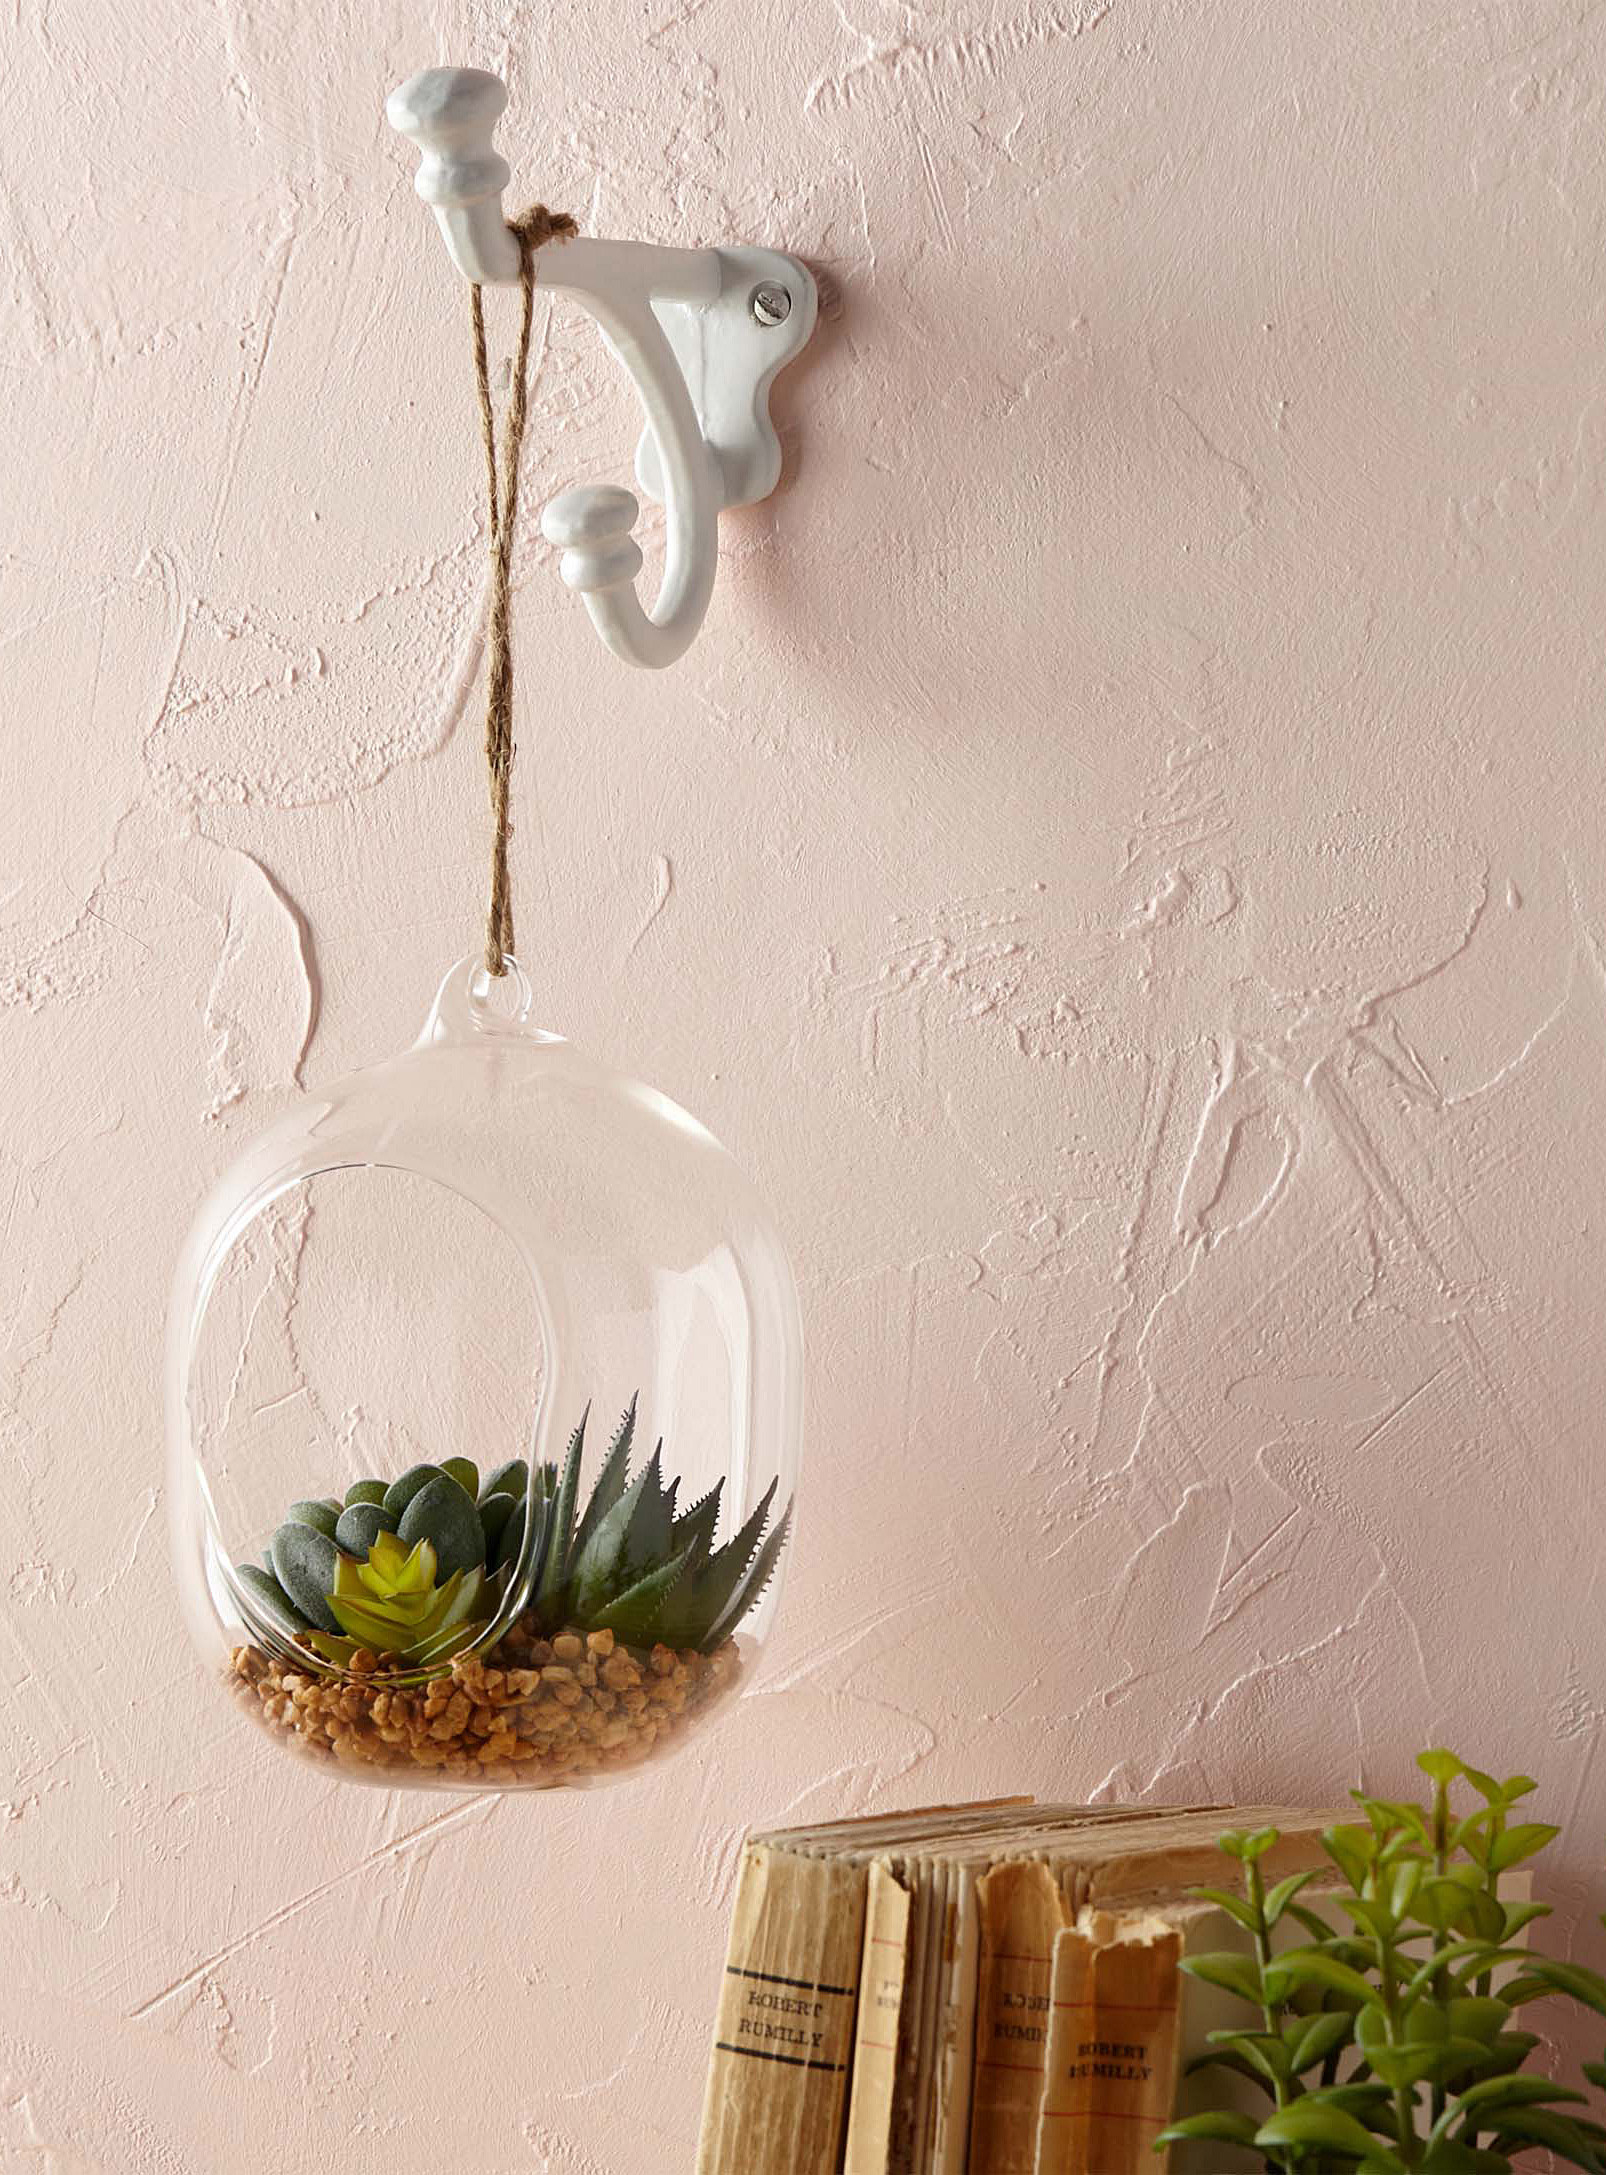 A round glass planter hanging on a hook in the wall